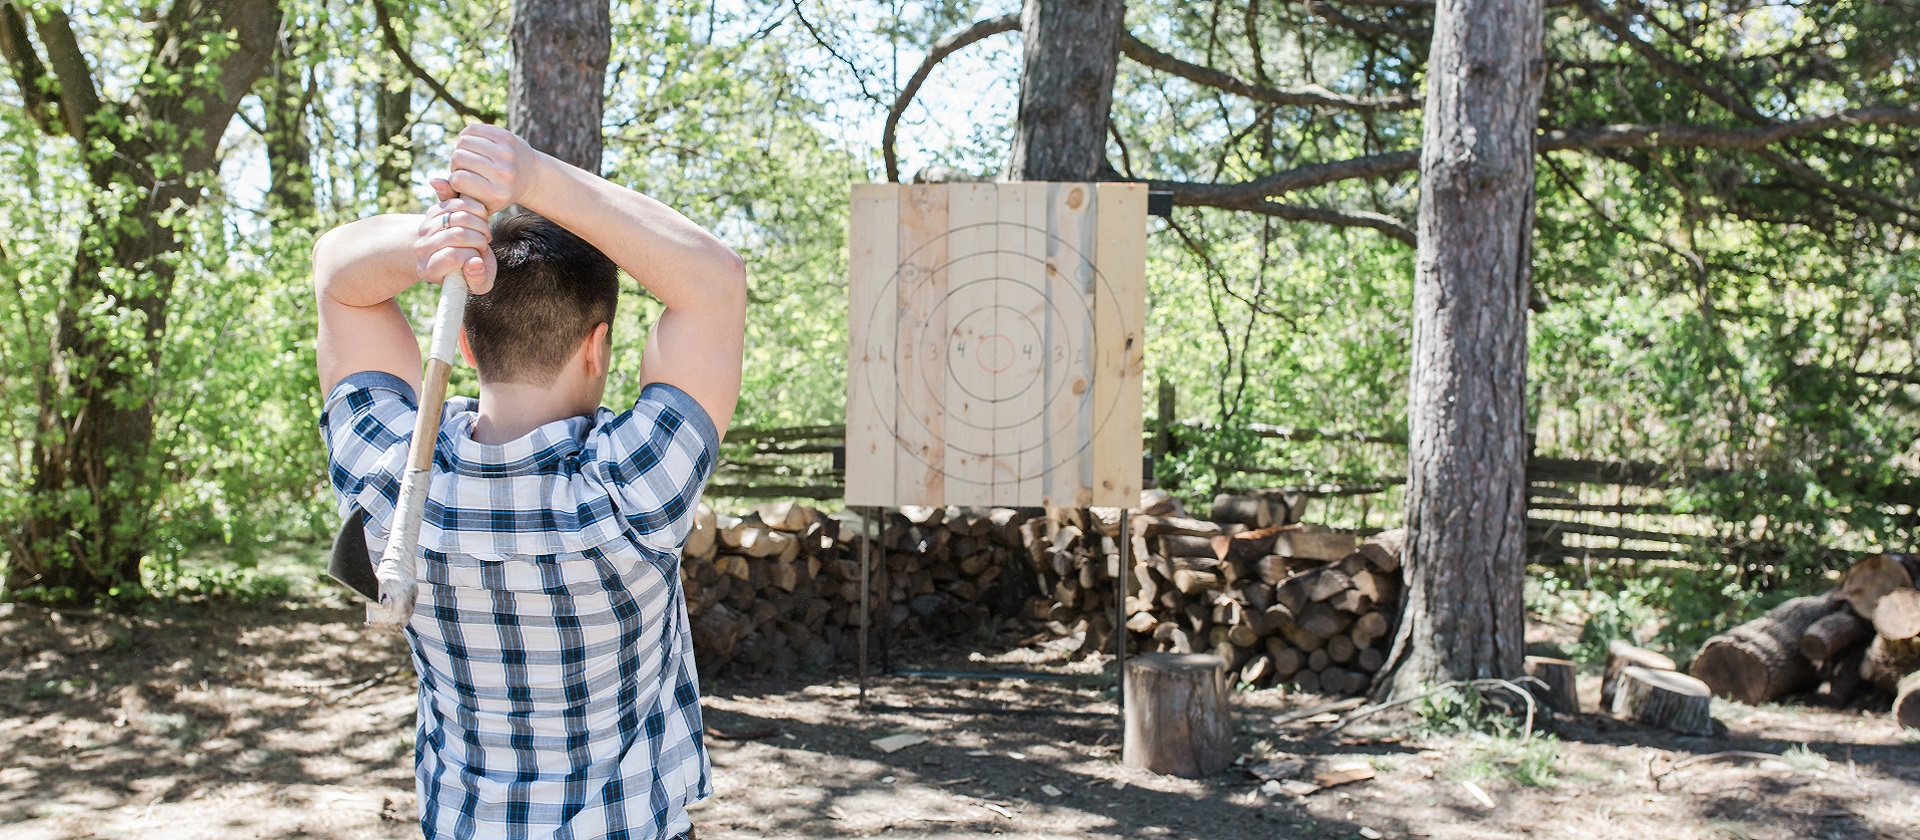 a young man prepares to throw an axe at a target